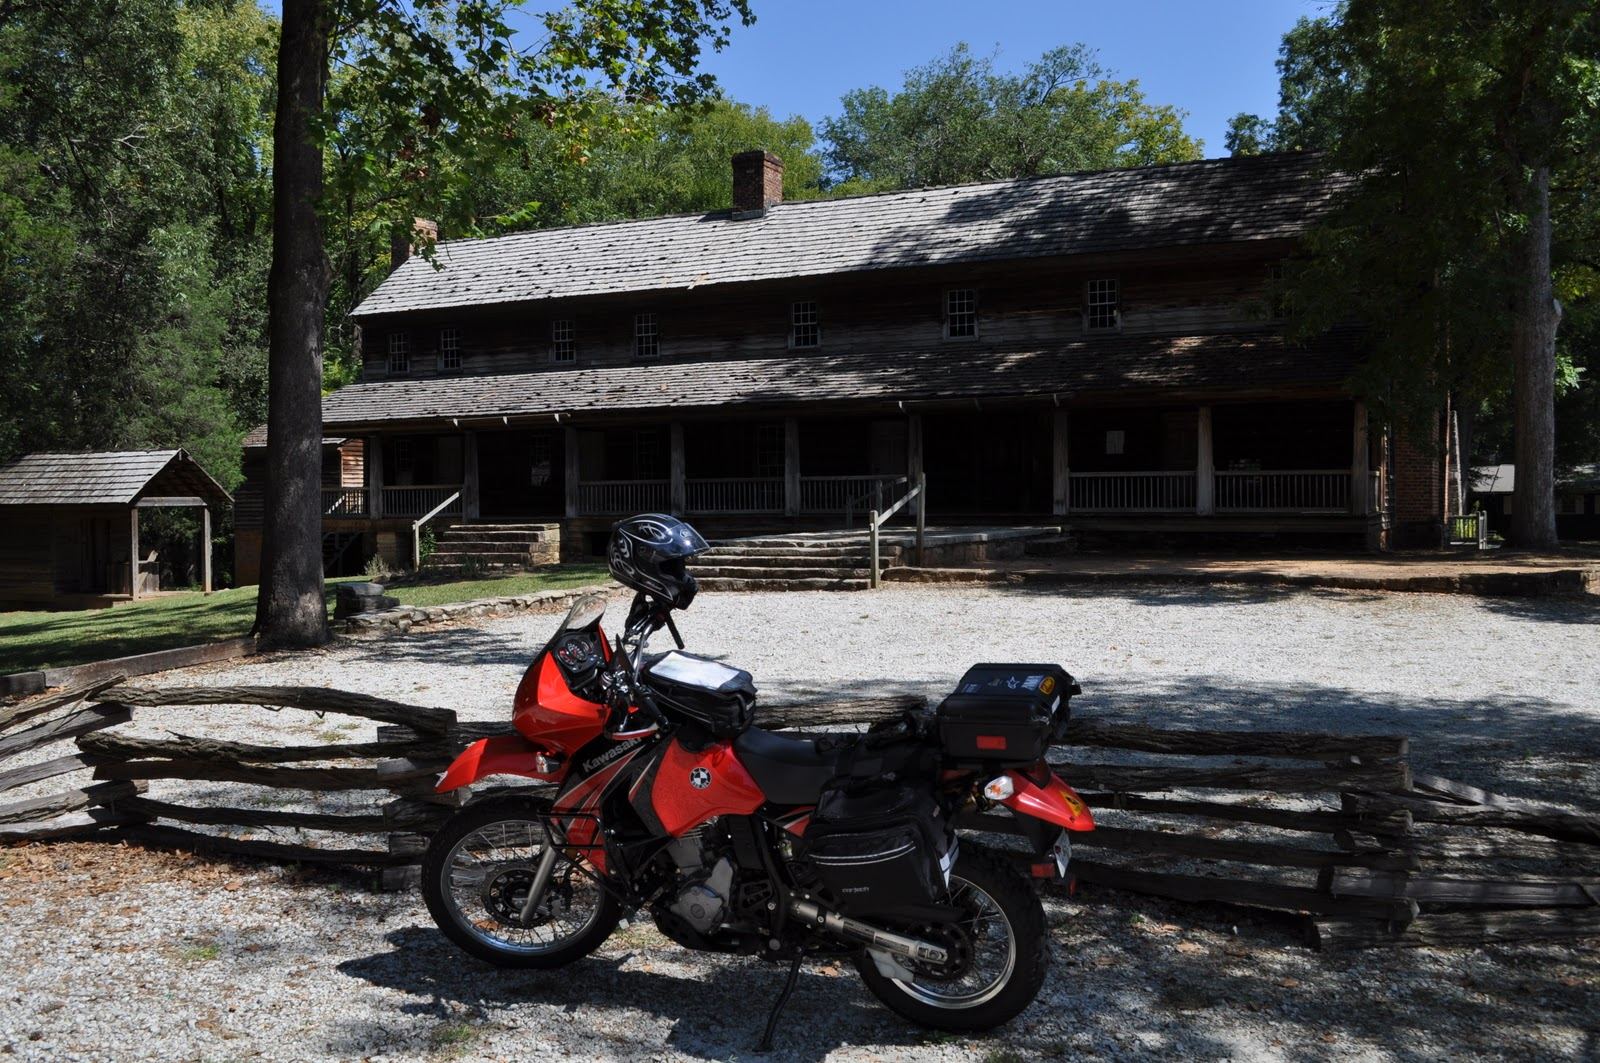 2 wheel 39 in down south south carolina sumter national for Sumter national forest cabins